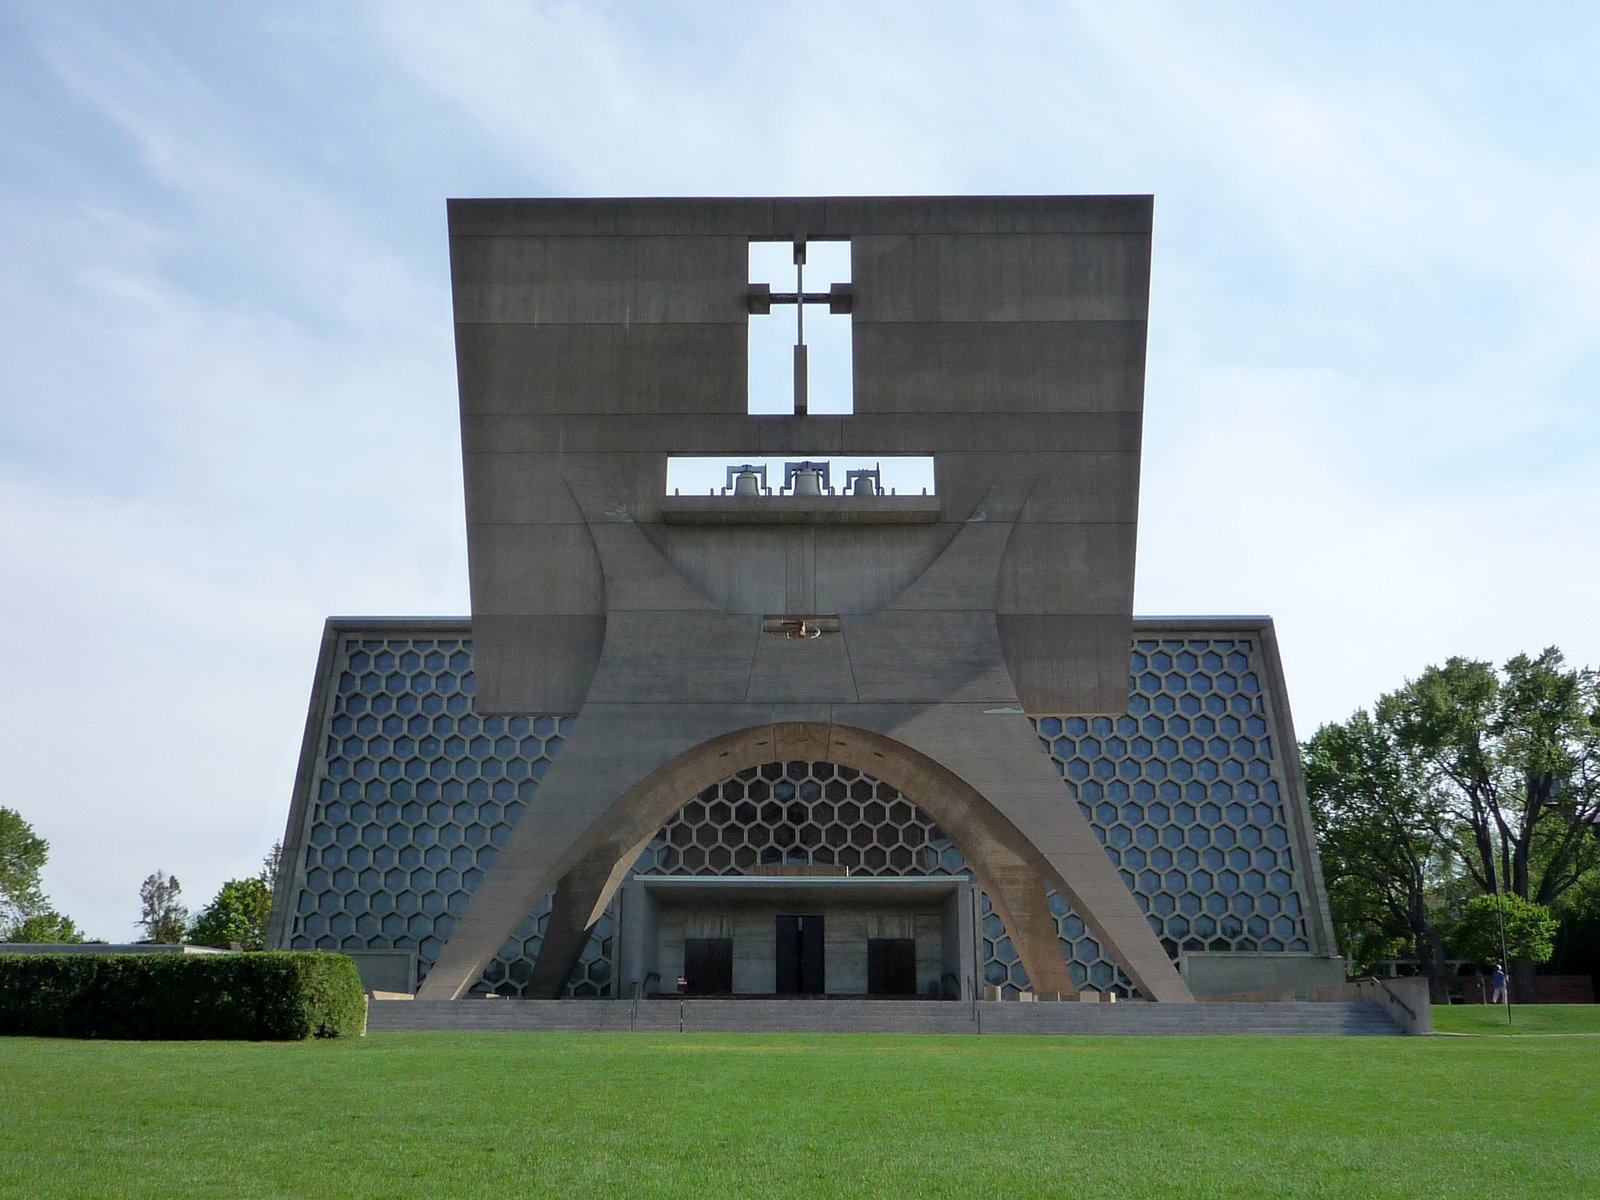 Marcel Breuer, St. John's Abbey (1961)  Designed by a Bauhaus icon, the modernist Minnesota church greets the faithful with a bell tower perched upon a curvaceous concrete stand. Breuer follows up a strong introduction with the church itself, boasting a massive wall of hexagonal stained glass and bold concrete tresses.  Photo courtesy Wikimedia Commons 10 Inspiring Modern Churches - Photo 3 of 10